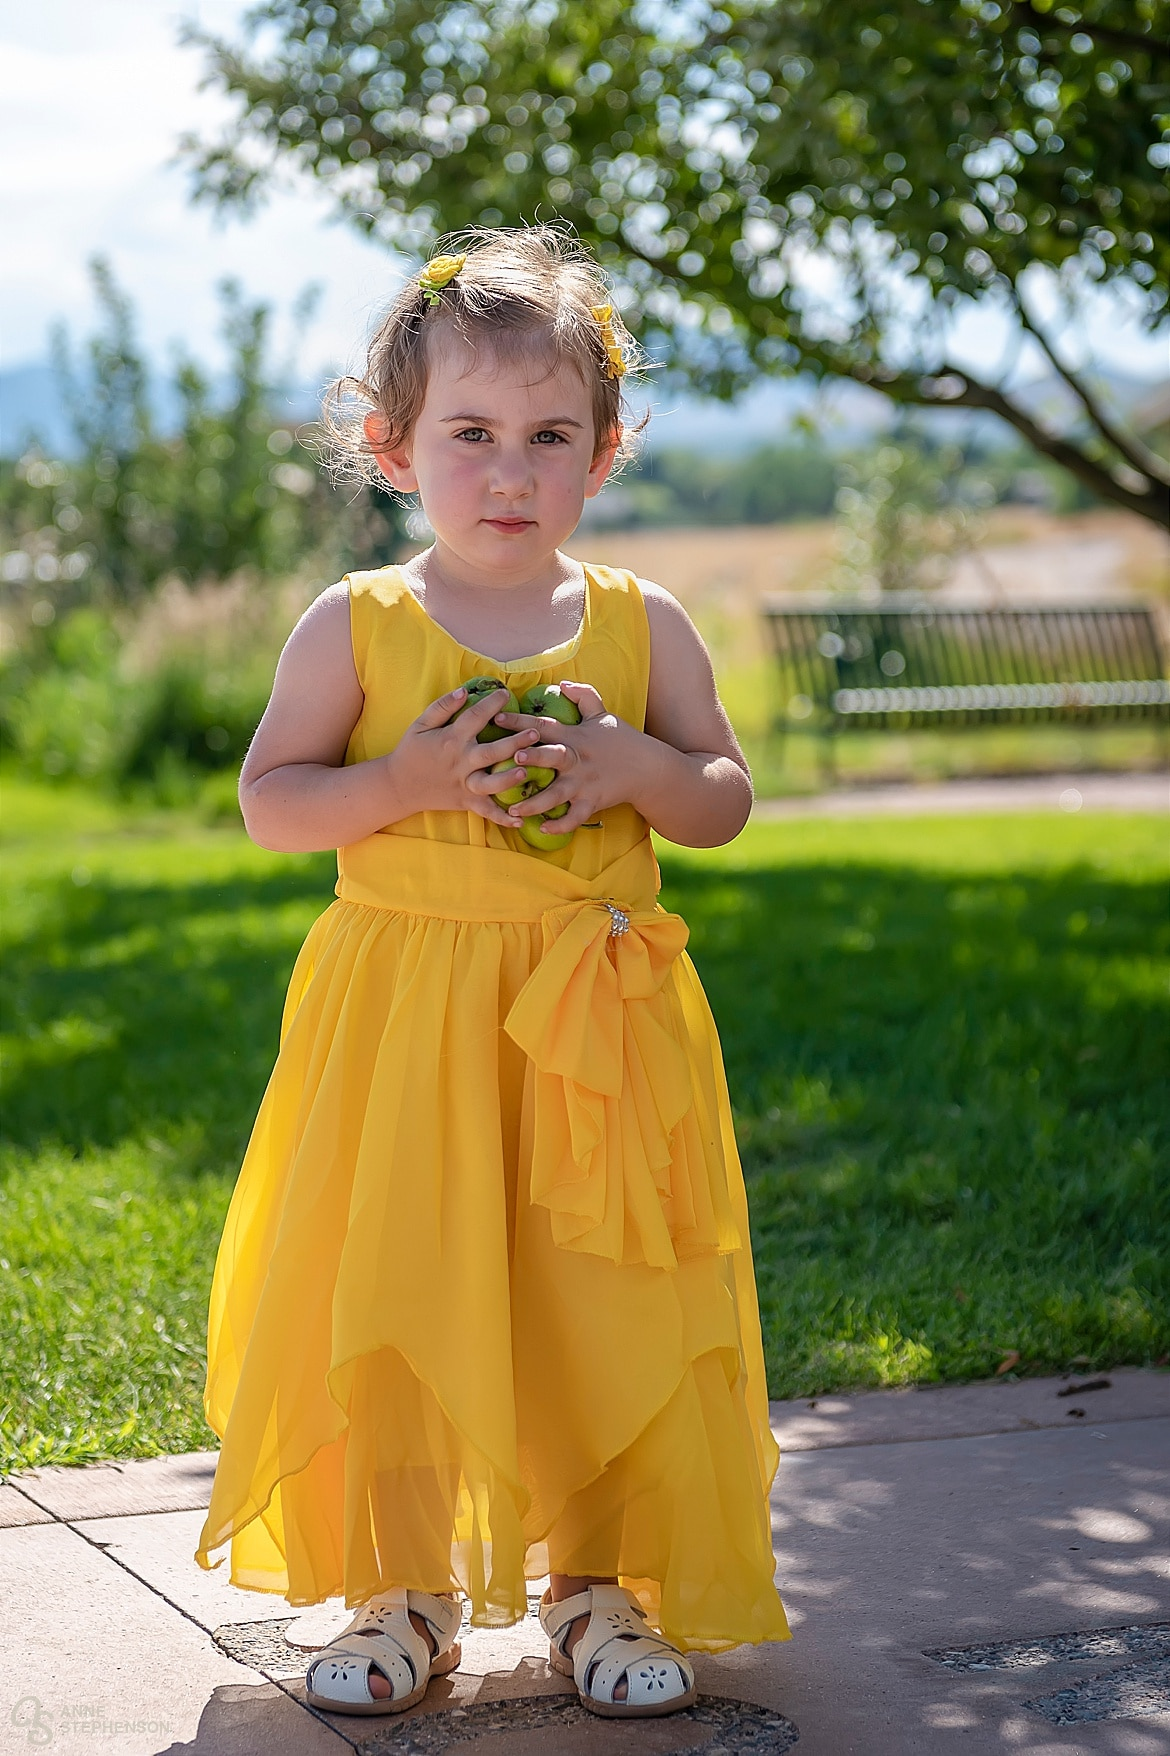 The flower girl collects green apples from the ground prior to the wedding at the Lakewood Heritage Center.